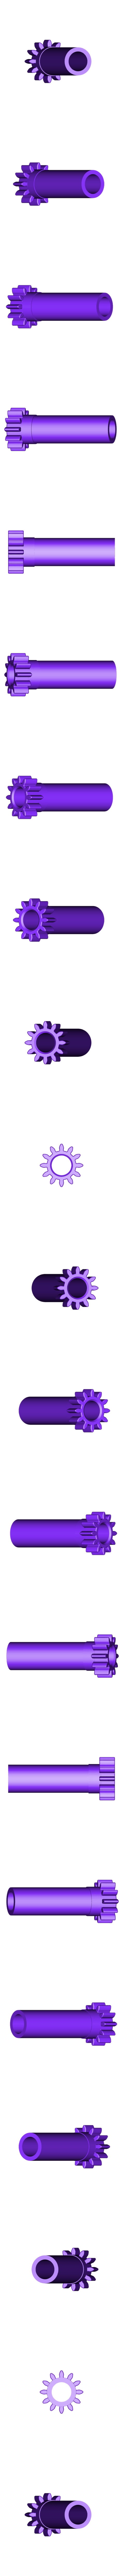 Gear12-Sun201.stl Download STL file Propfan Engine, Pusher Type using with Planetary Gearbox • 3D printer template, konchan77